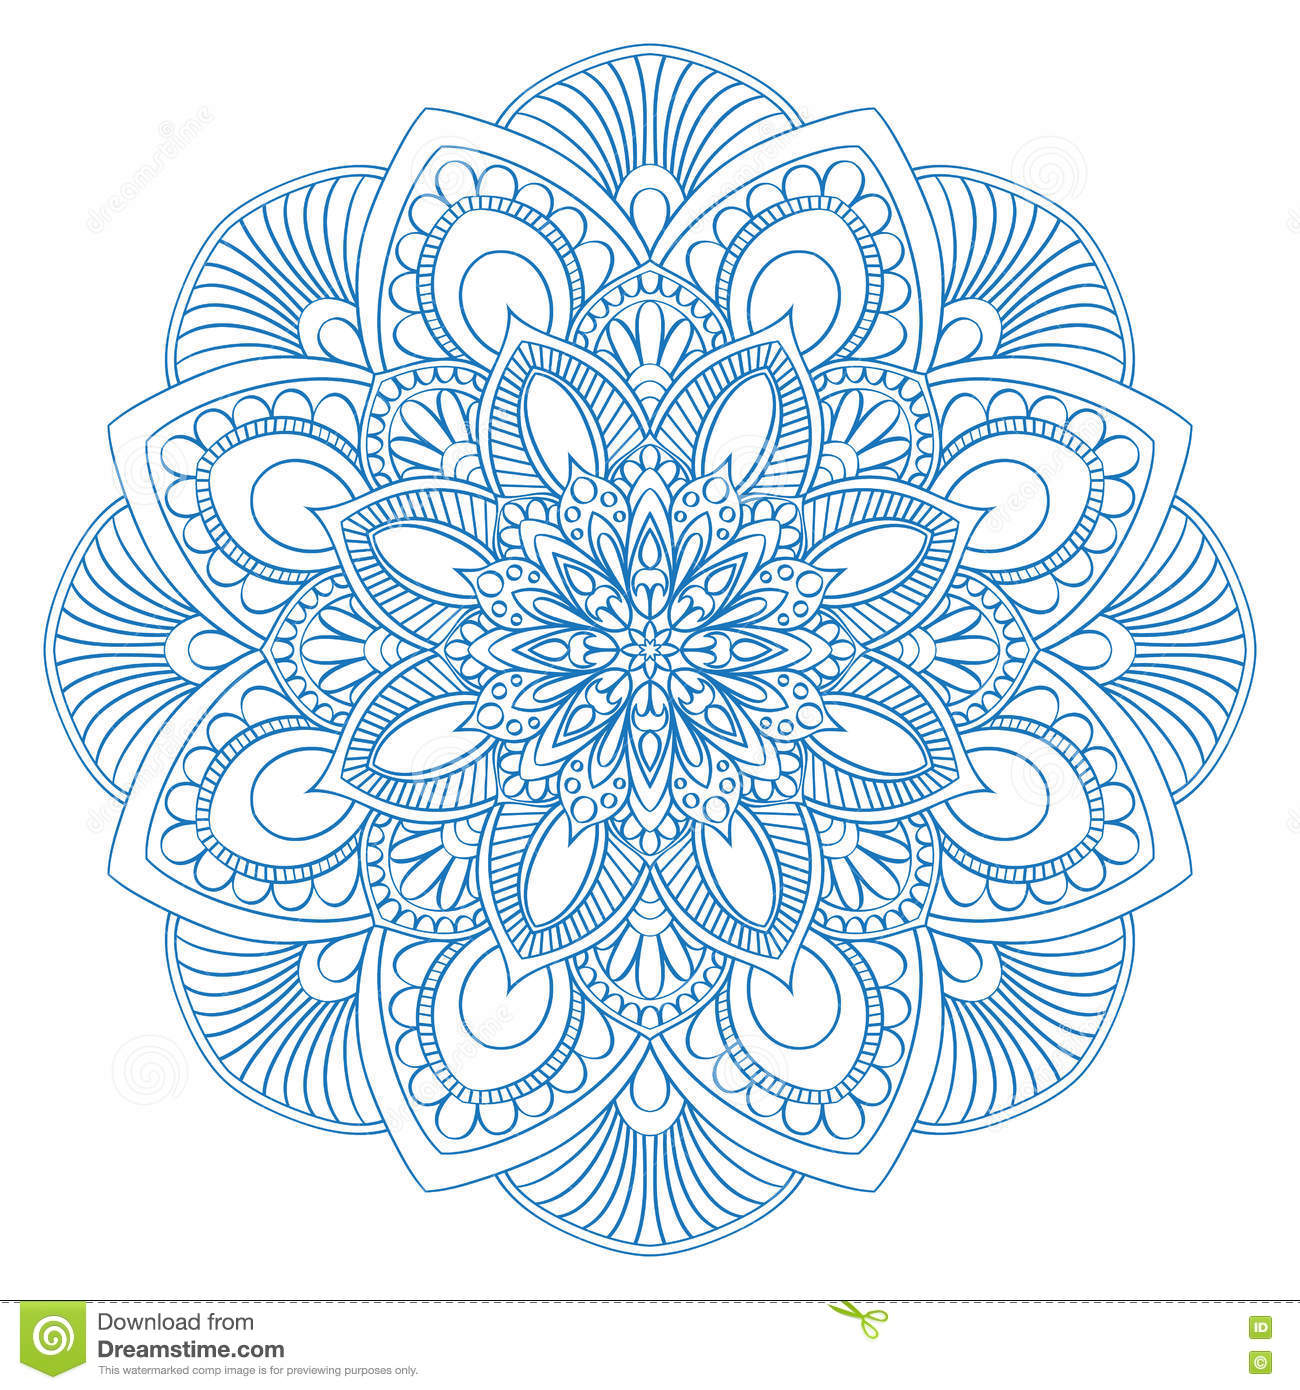 Art stress therapy coloring book - Royalty Free Vector Download Ethnic Mandala Symbol For Coloring Book Anti Stress Therapy Pattern